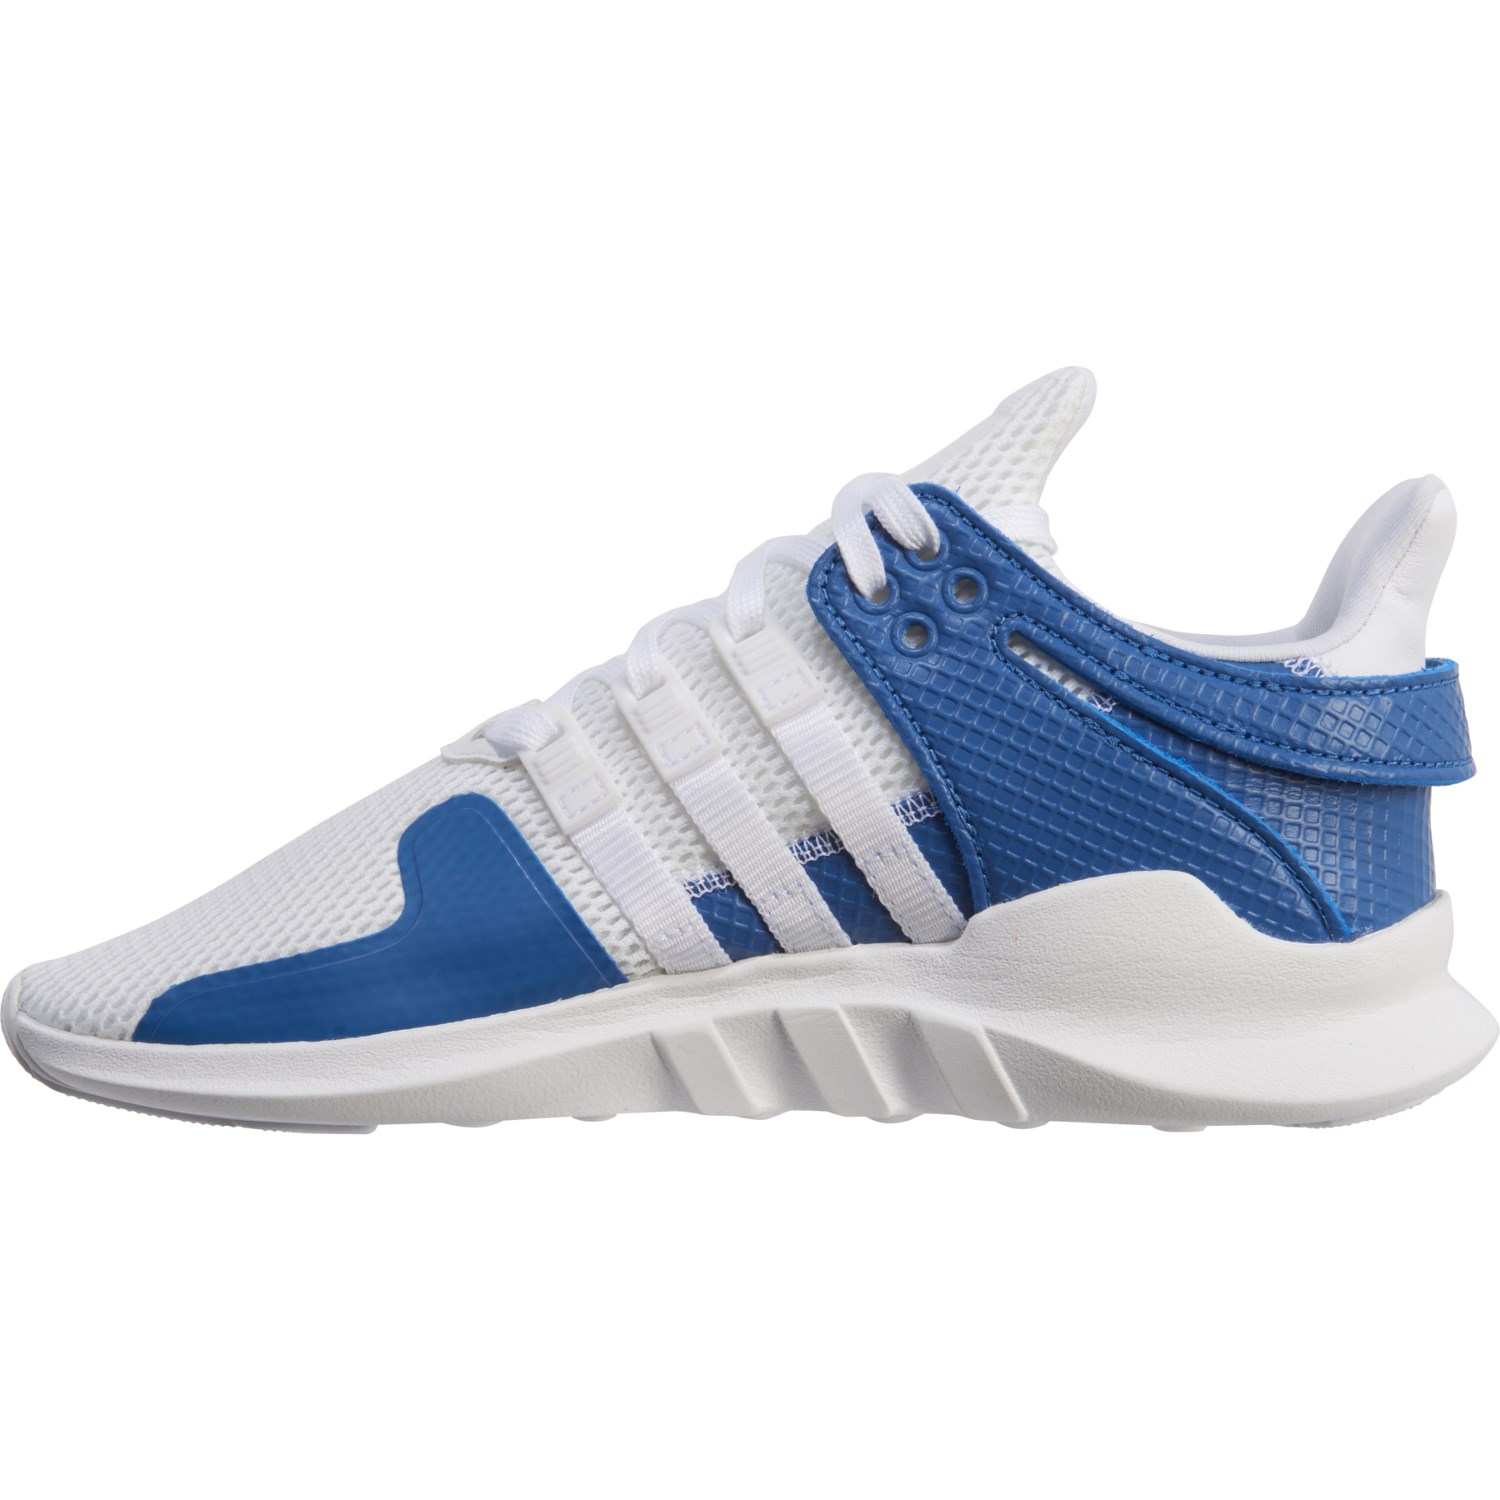 new product 85b1e 86187 adidas Originals EQT Support Adv J Running Shoes (For Little ...